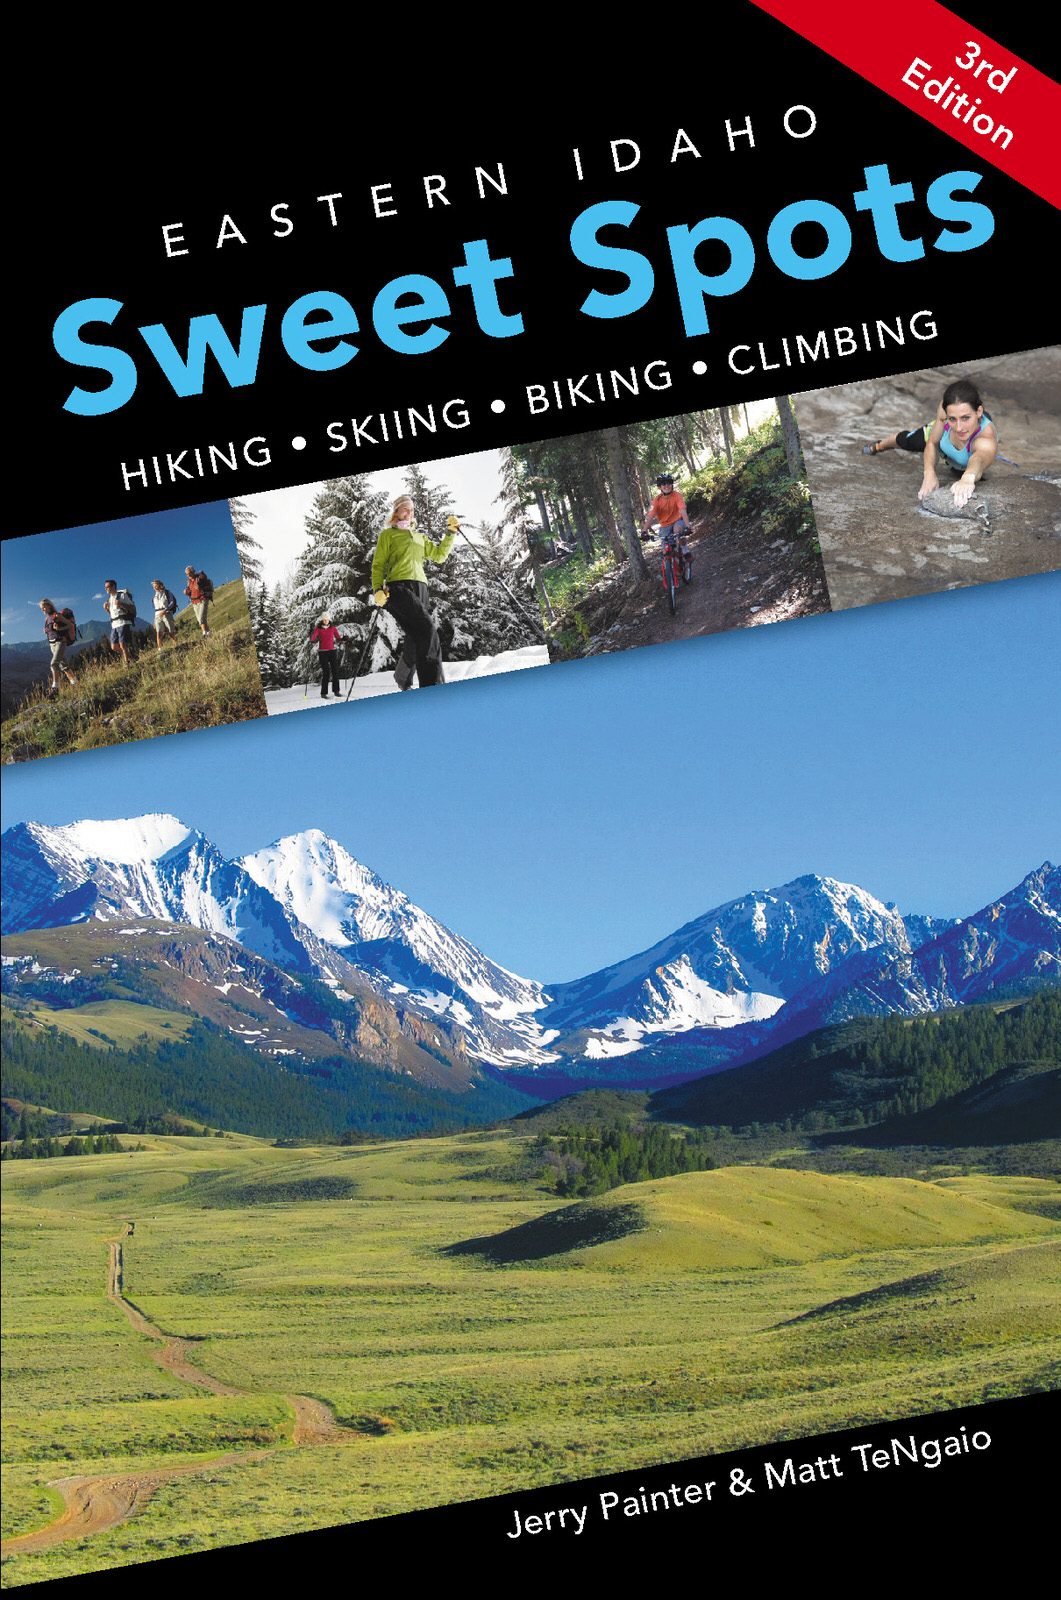 Eastern Idaho Sweet Spots (3rd Edition)